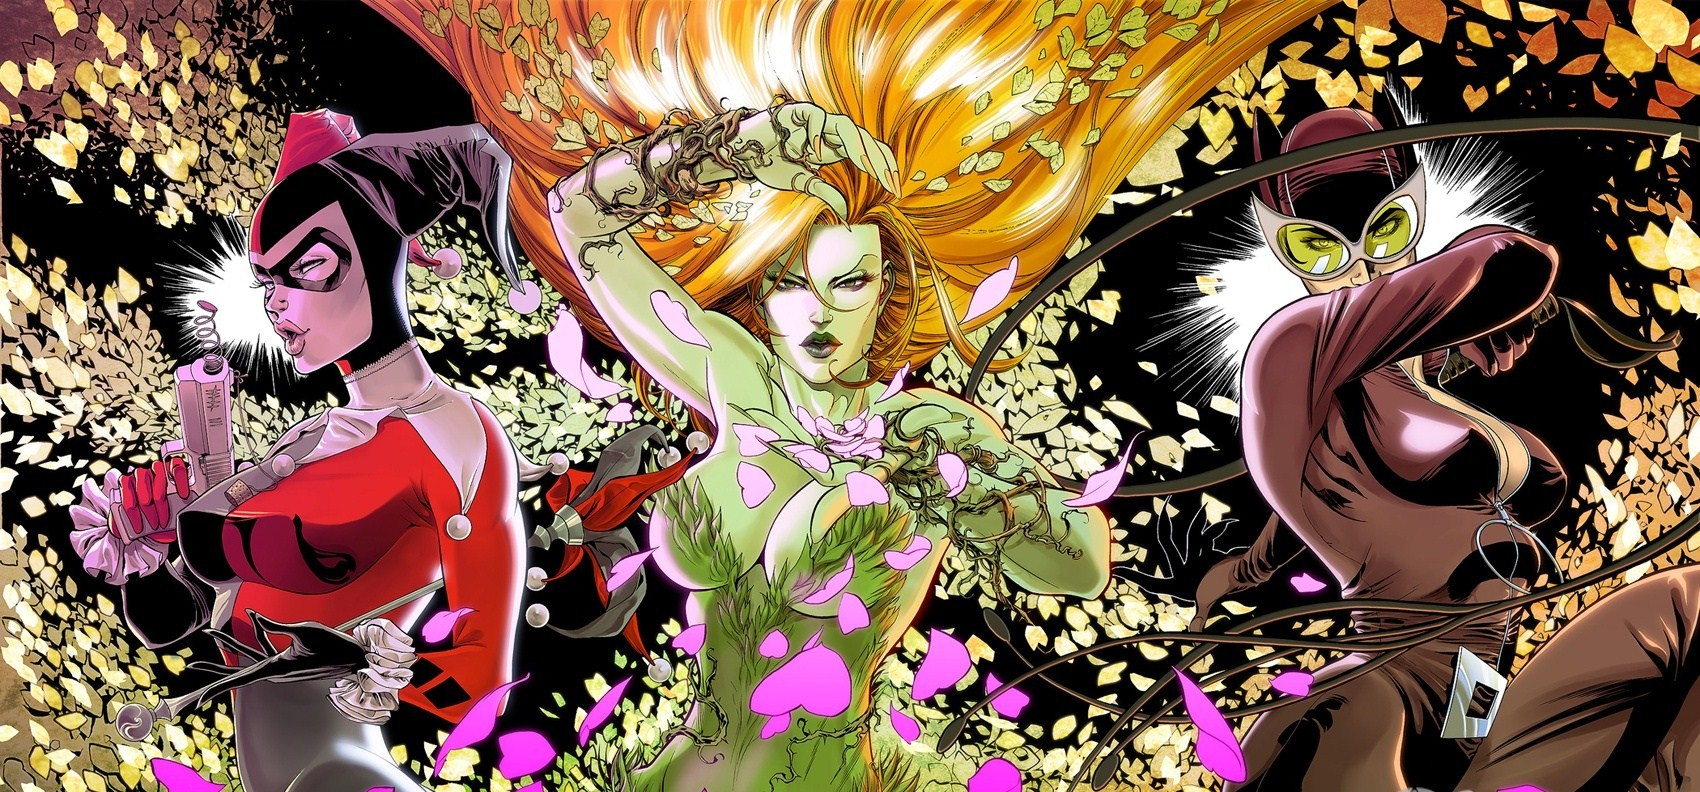 Five Things You Should Know About the Gotham City Sirens Movie